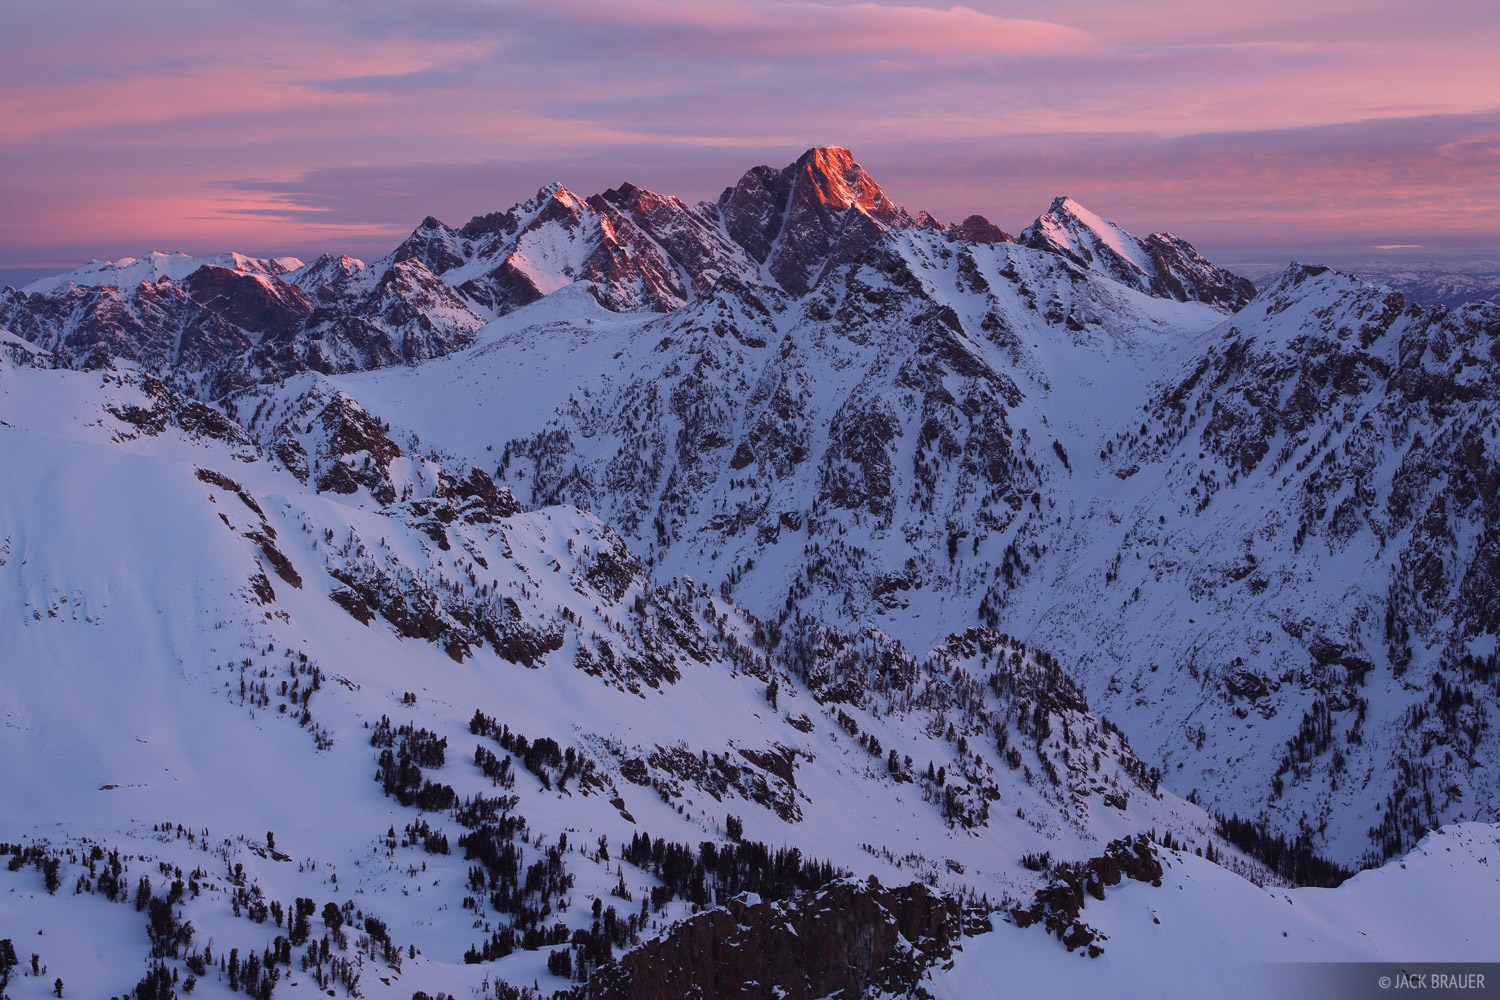 Mt. Moran, sunrise, alpenglow, Tetons, Wyoming, Grand Teton National Park, photo